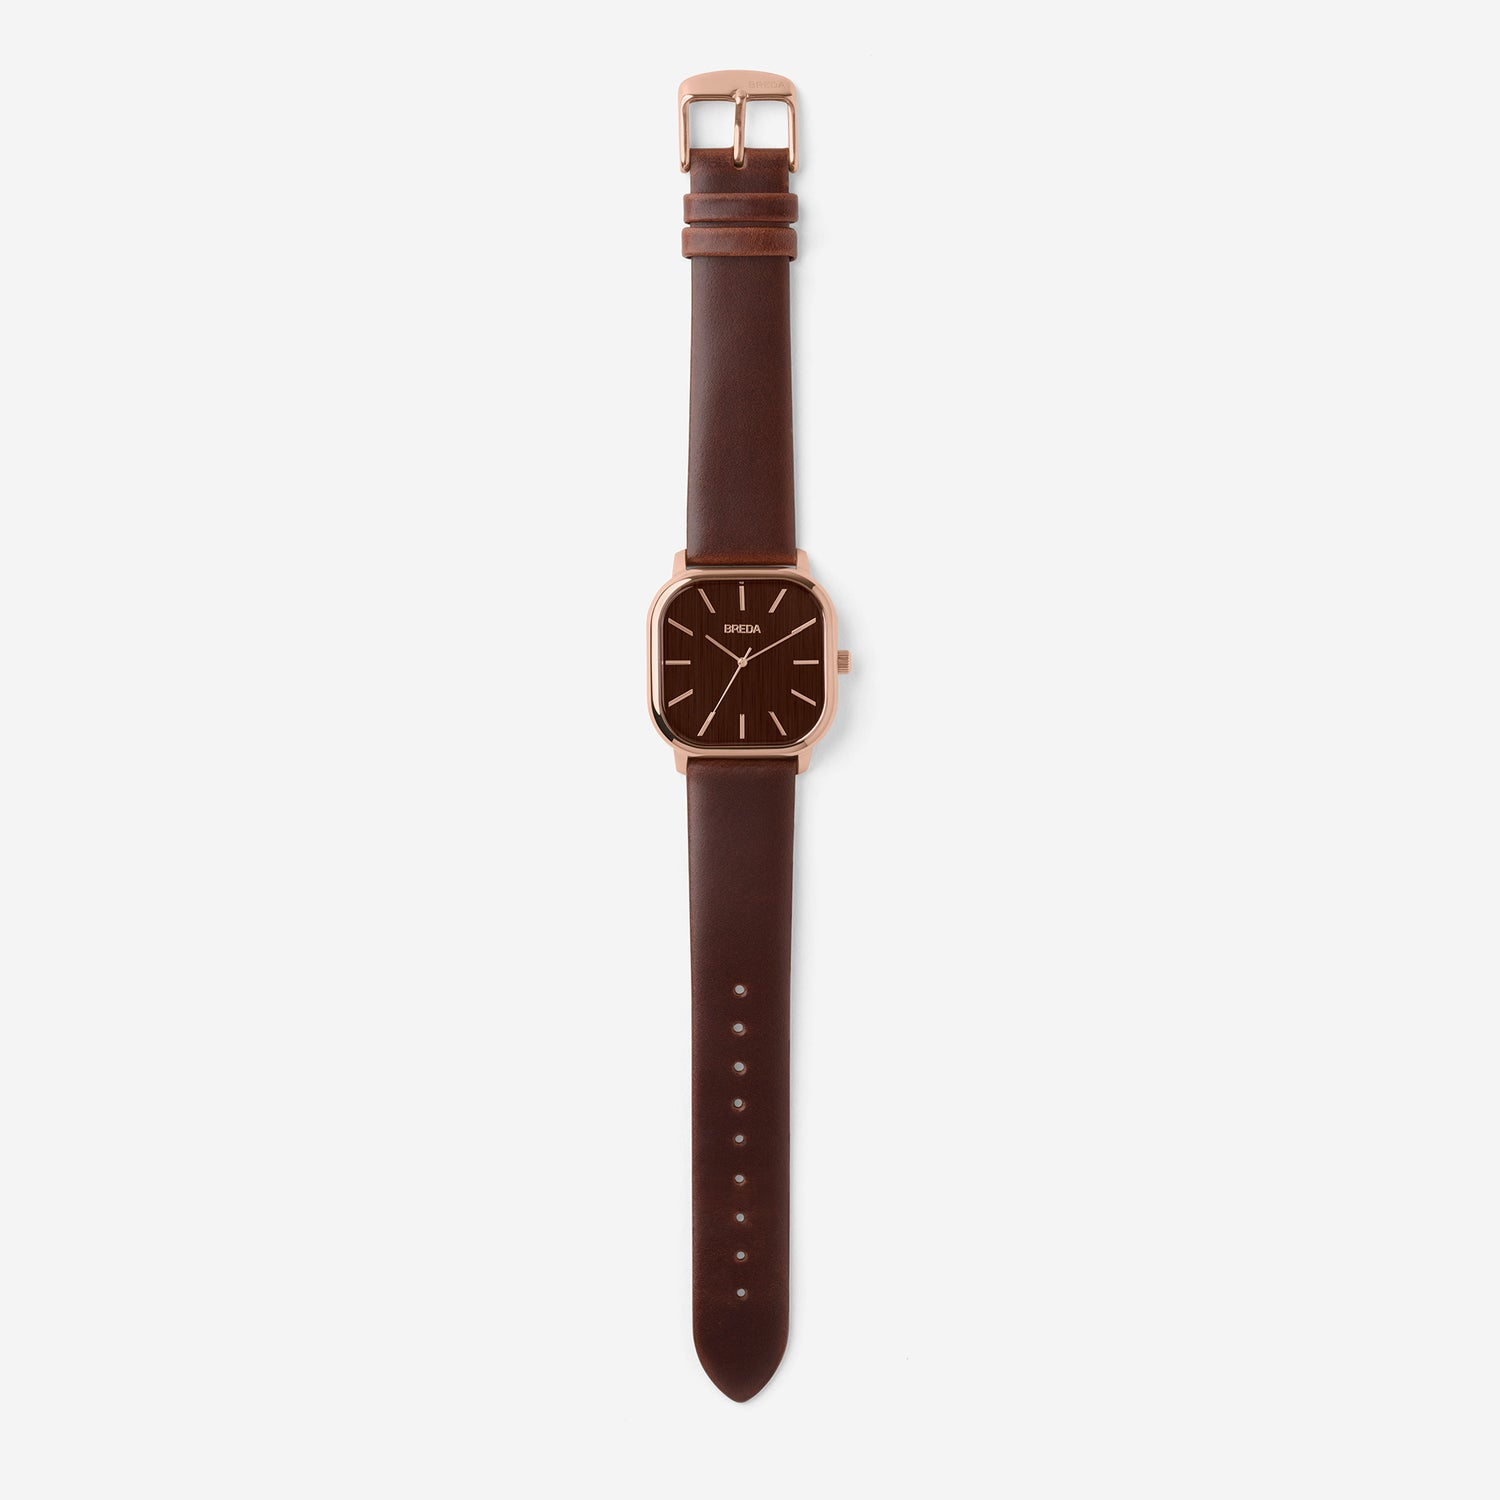 breda-visser-1728f-rose-gold-brown-leather-watch-long